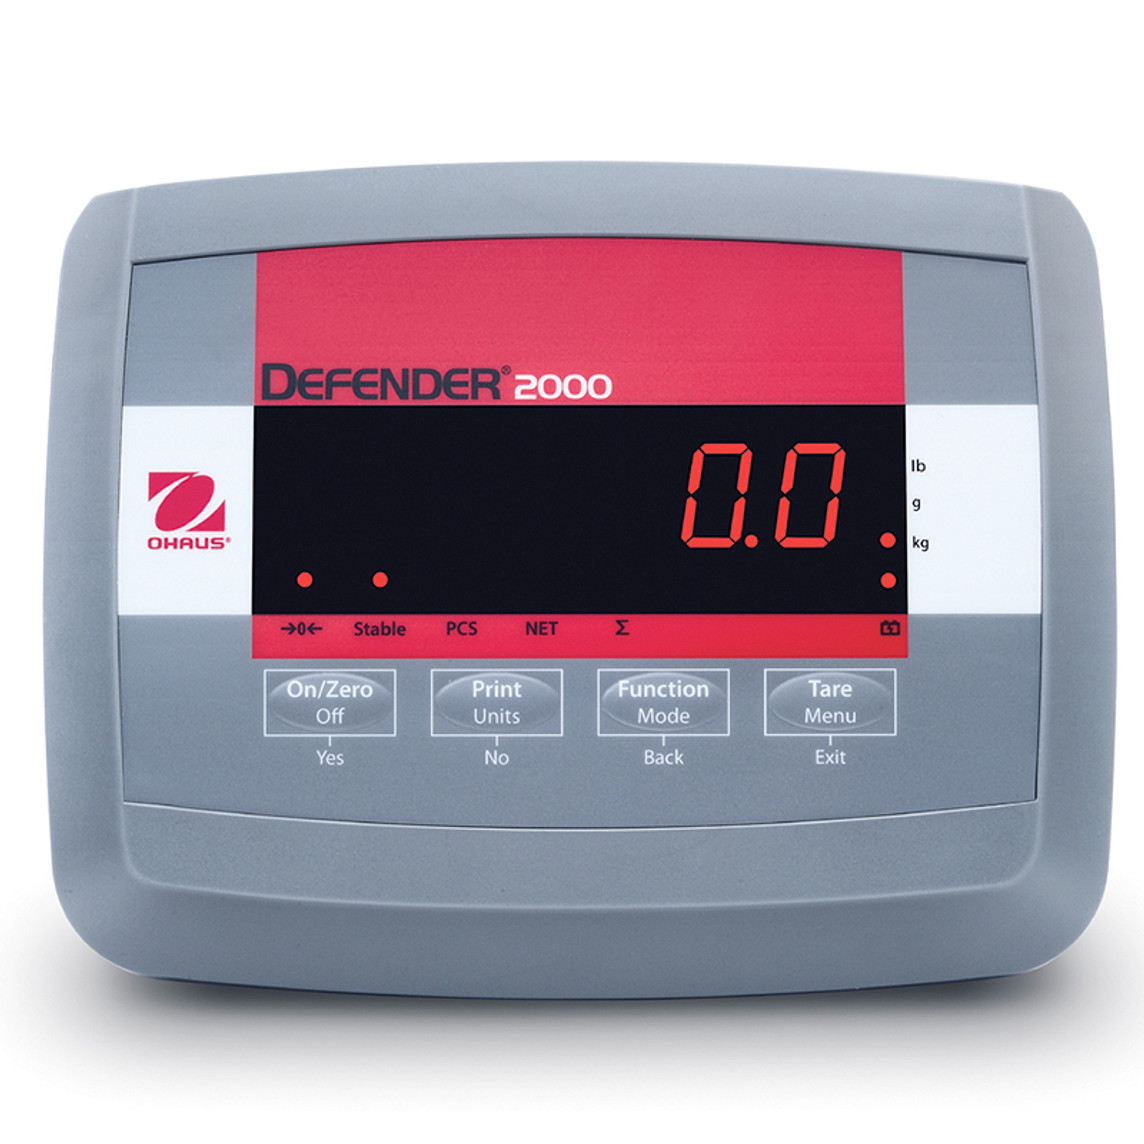 Ohaus Defender 2000 Indicator